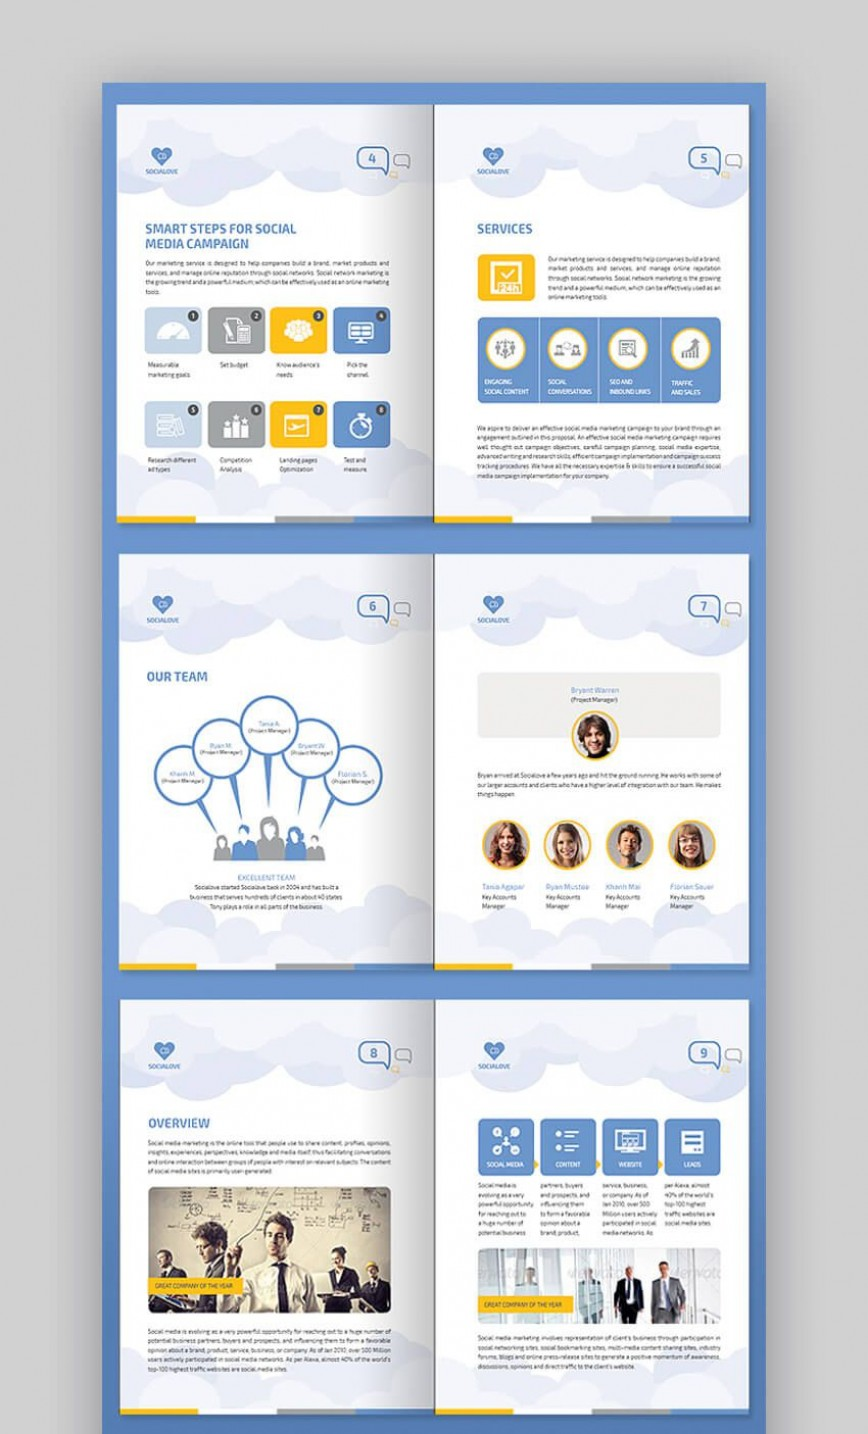 009 Imposing Social Media Proposal Template Image  Plan Sample Pdf 2018868